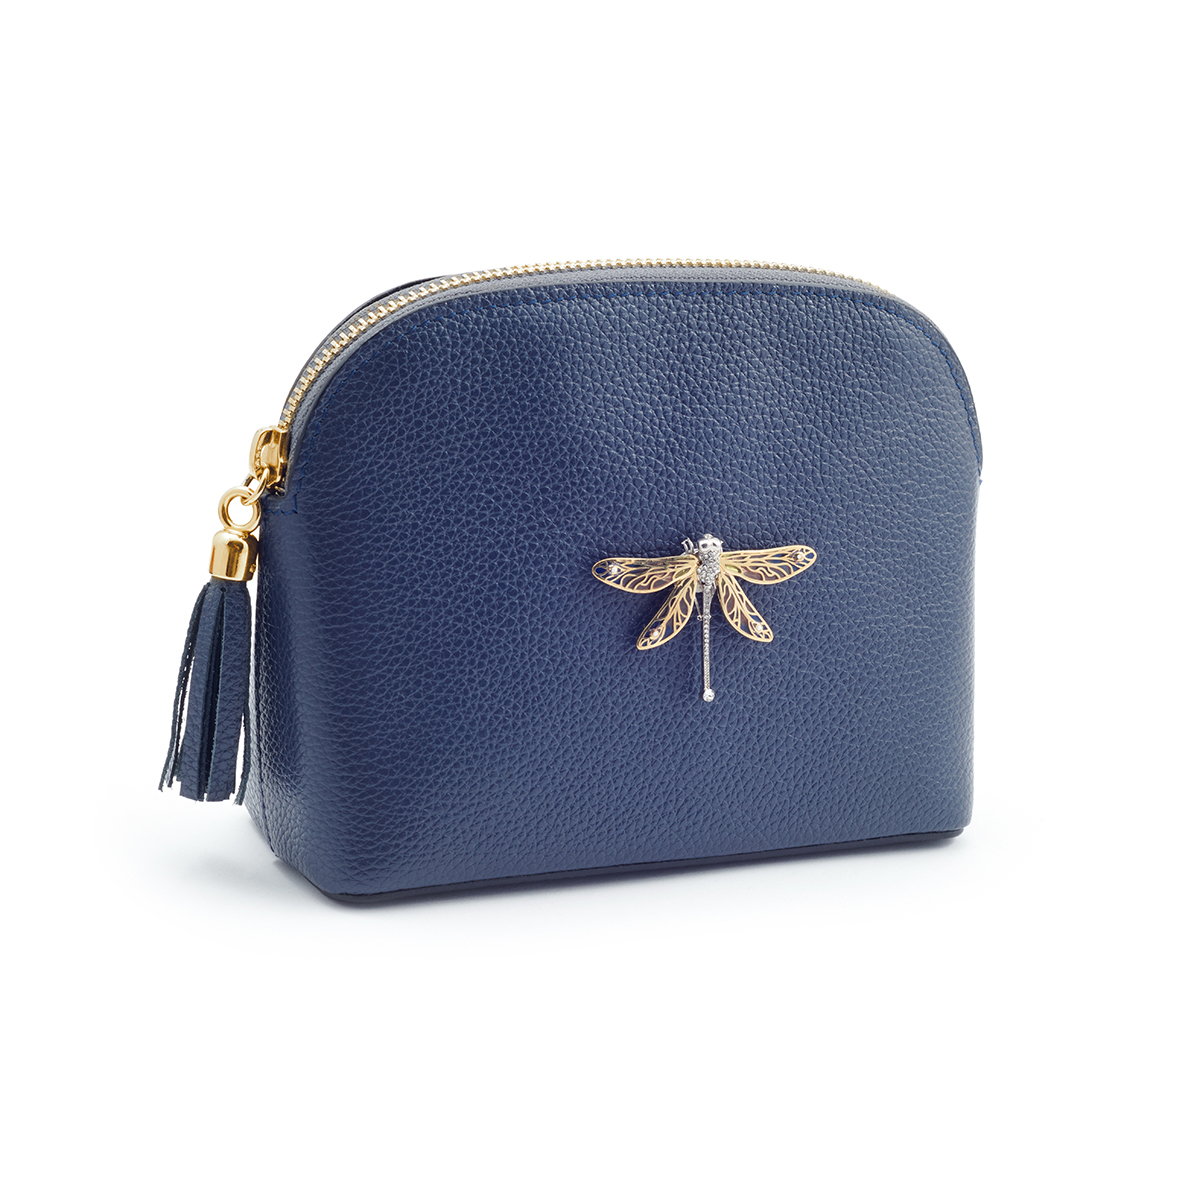 Dragonfly Leather Handbag - Navy